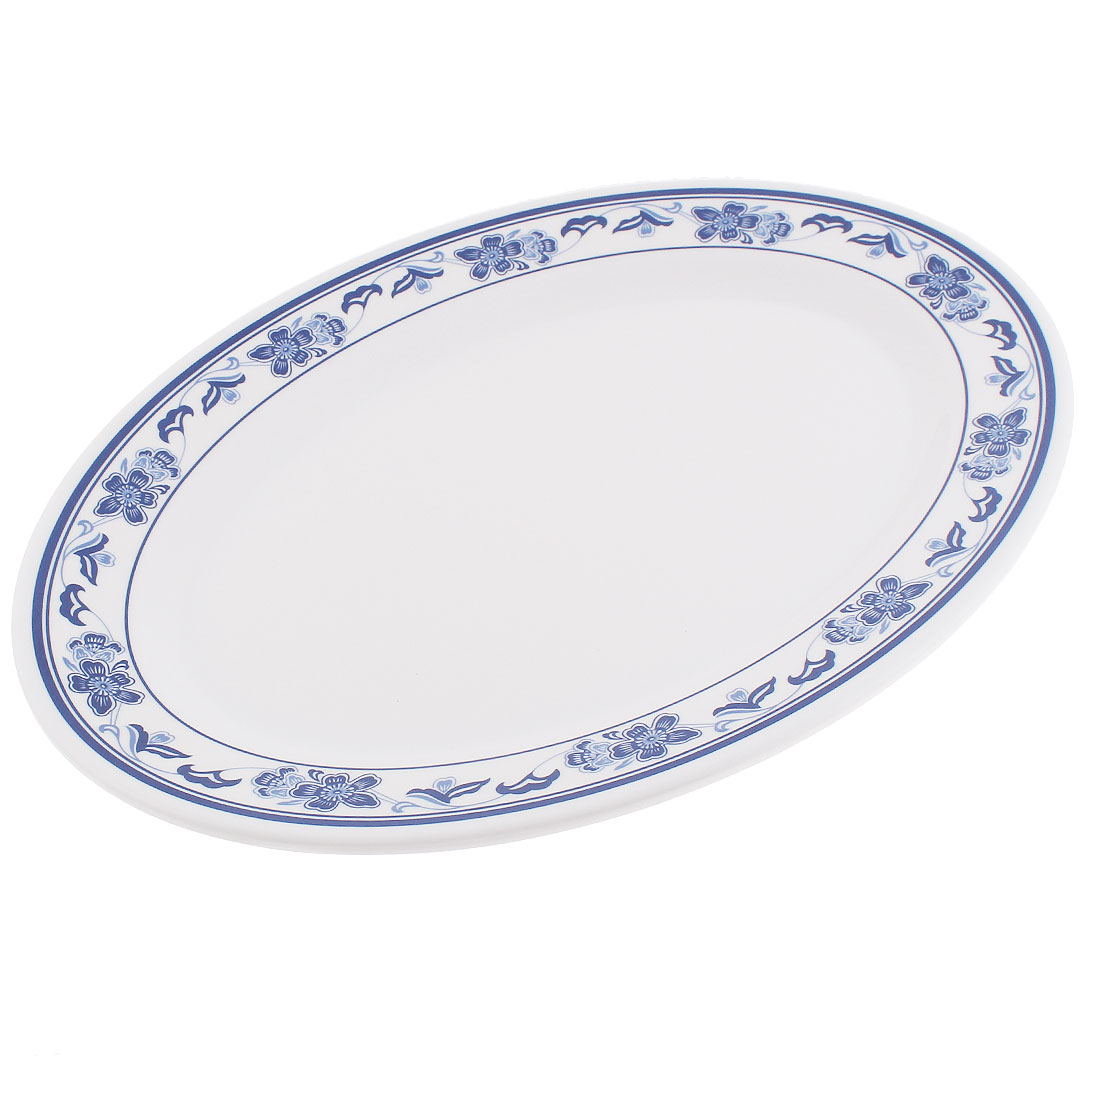 "Hotel Restaurant Plastic Flower Pattern Oval Shape Food Dish Plate 17"" Length"